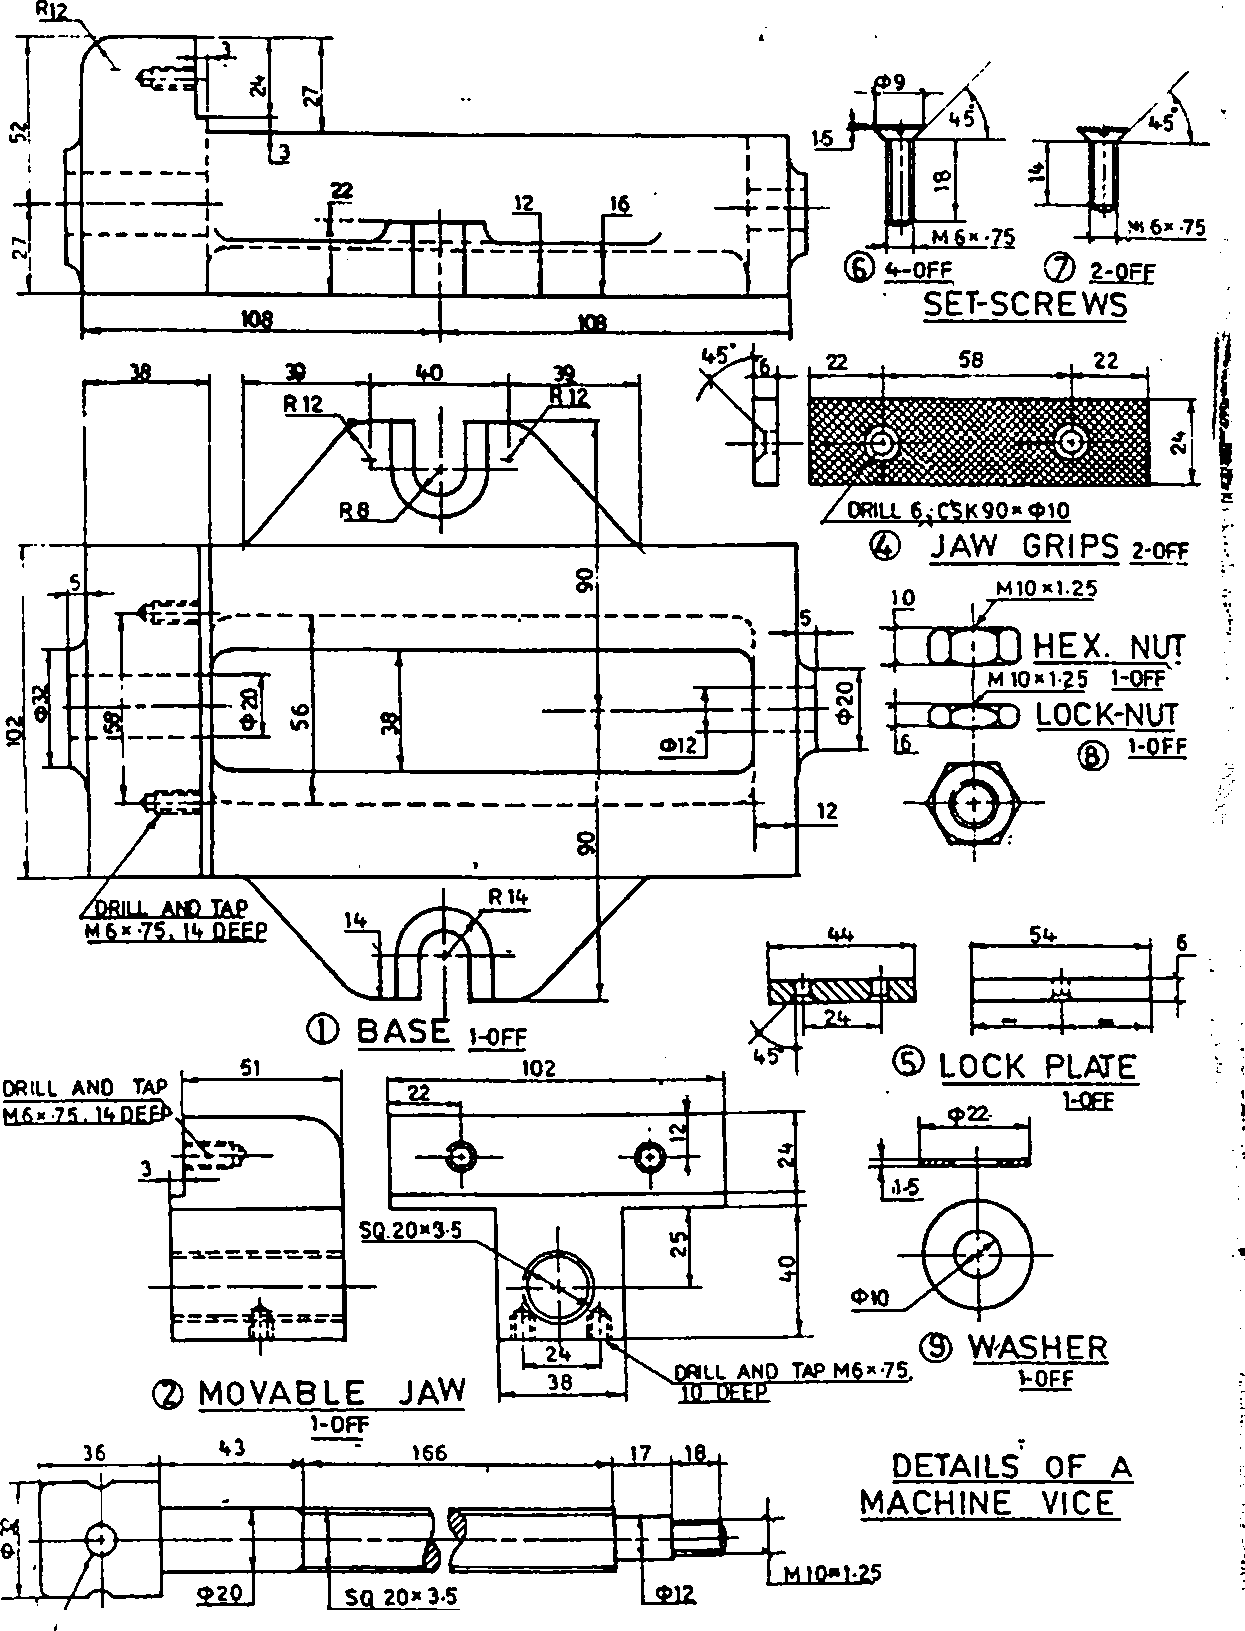 hvac mechanical drawing symbols pdf